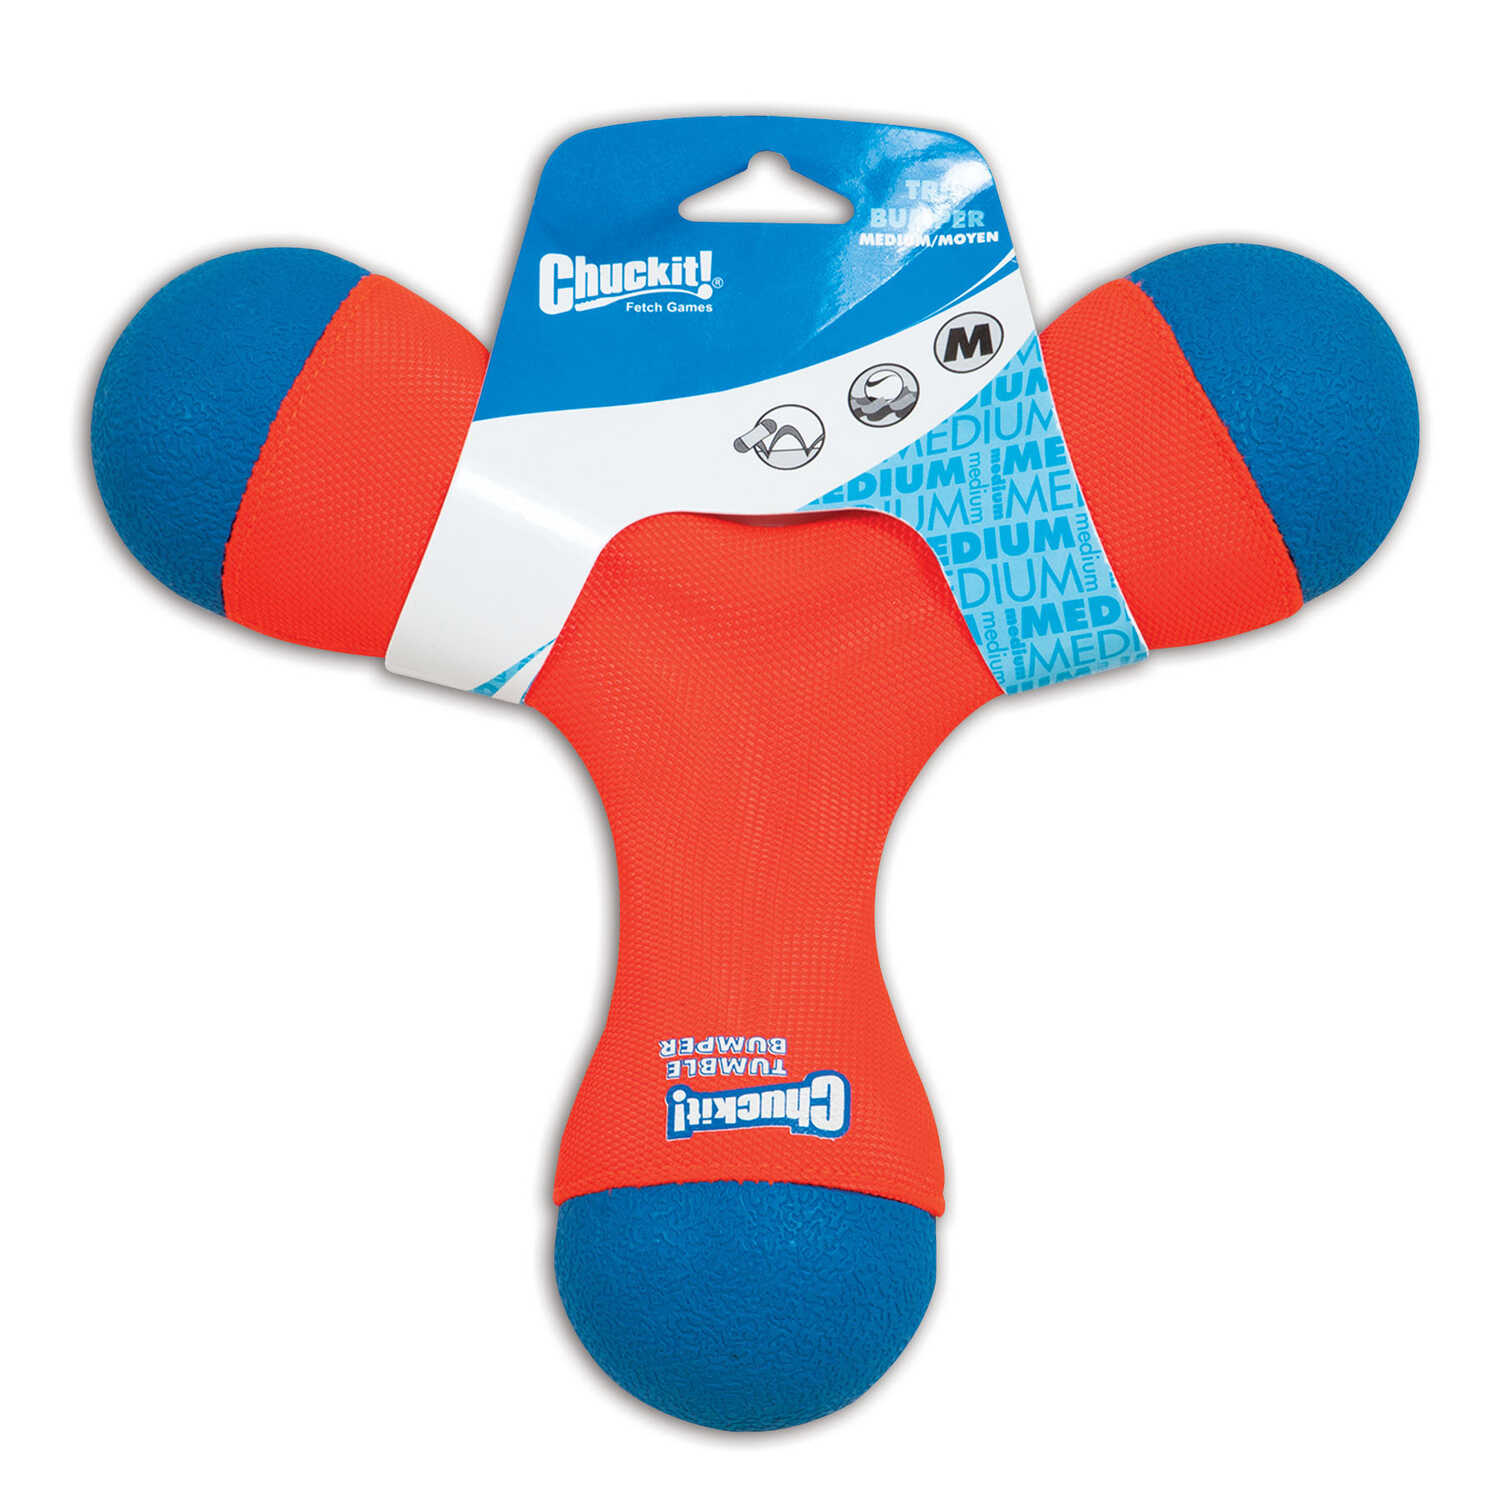 Chuckit!  Multicolored  Tri Bumper  Rubber  Medium  Tug Toy